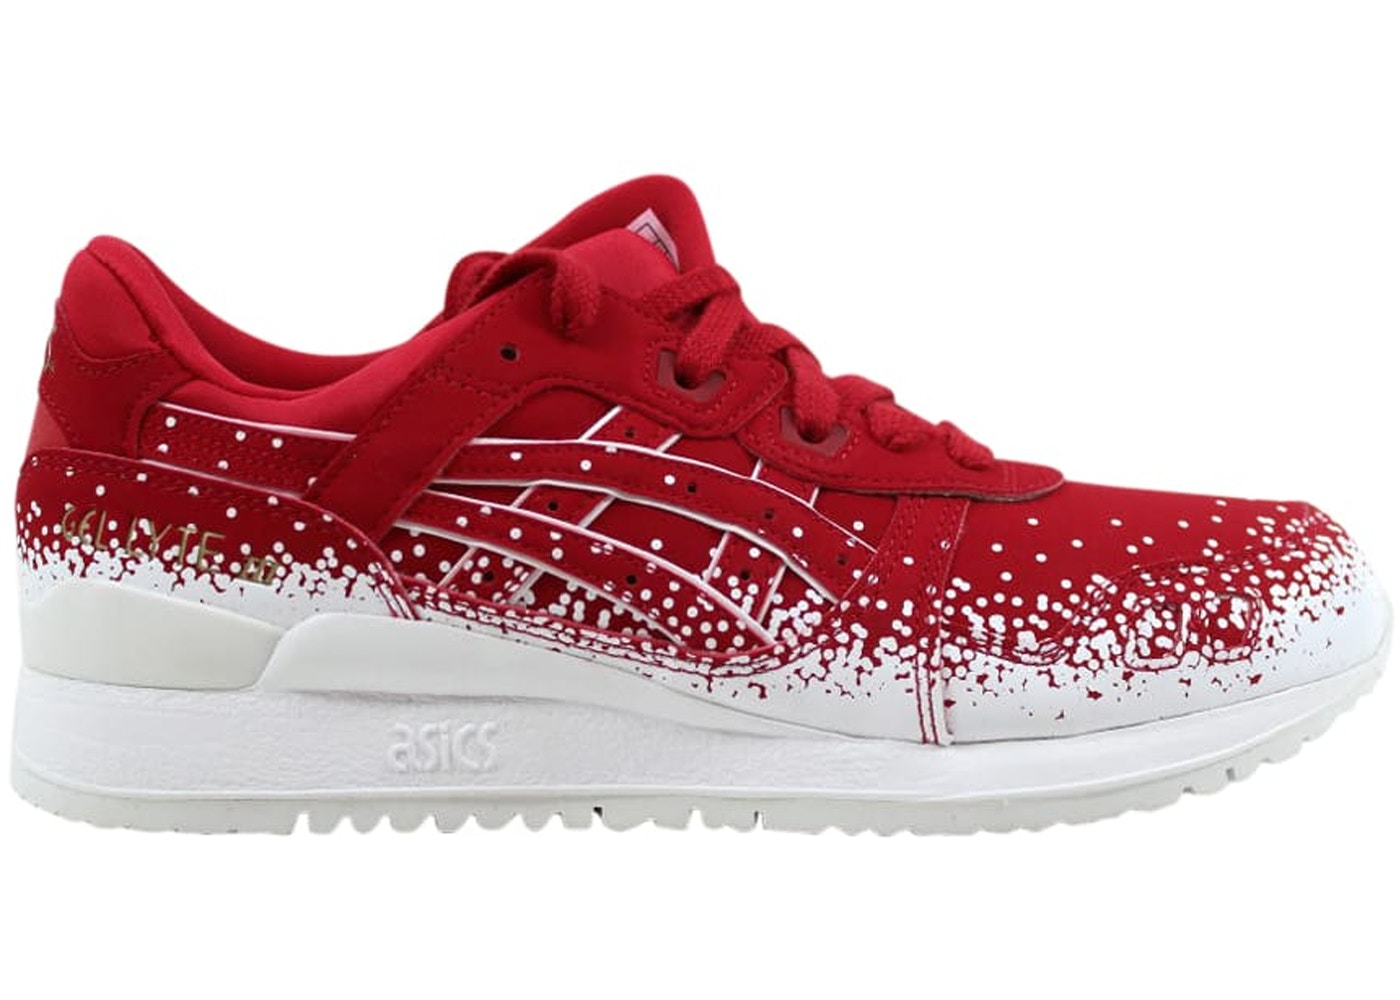 lowest price b76ce 32766 Asics Gel-Lyte III Christmas Red